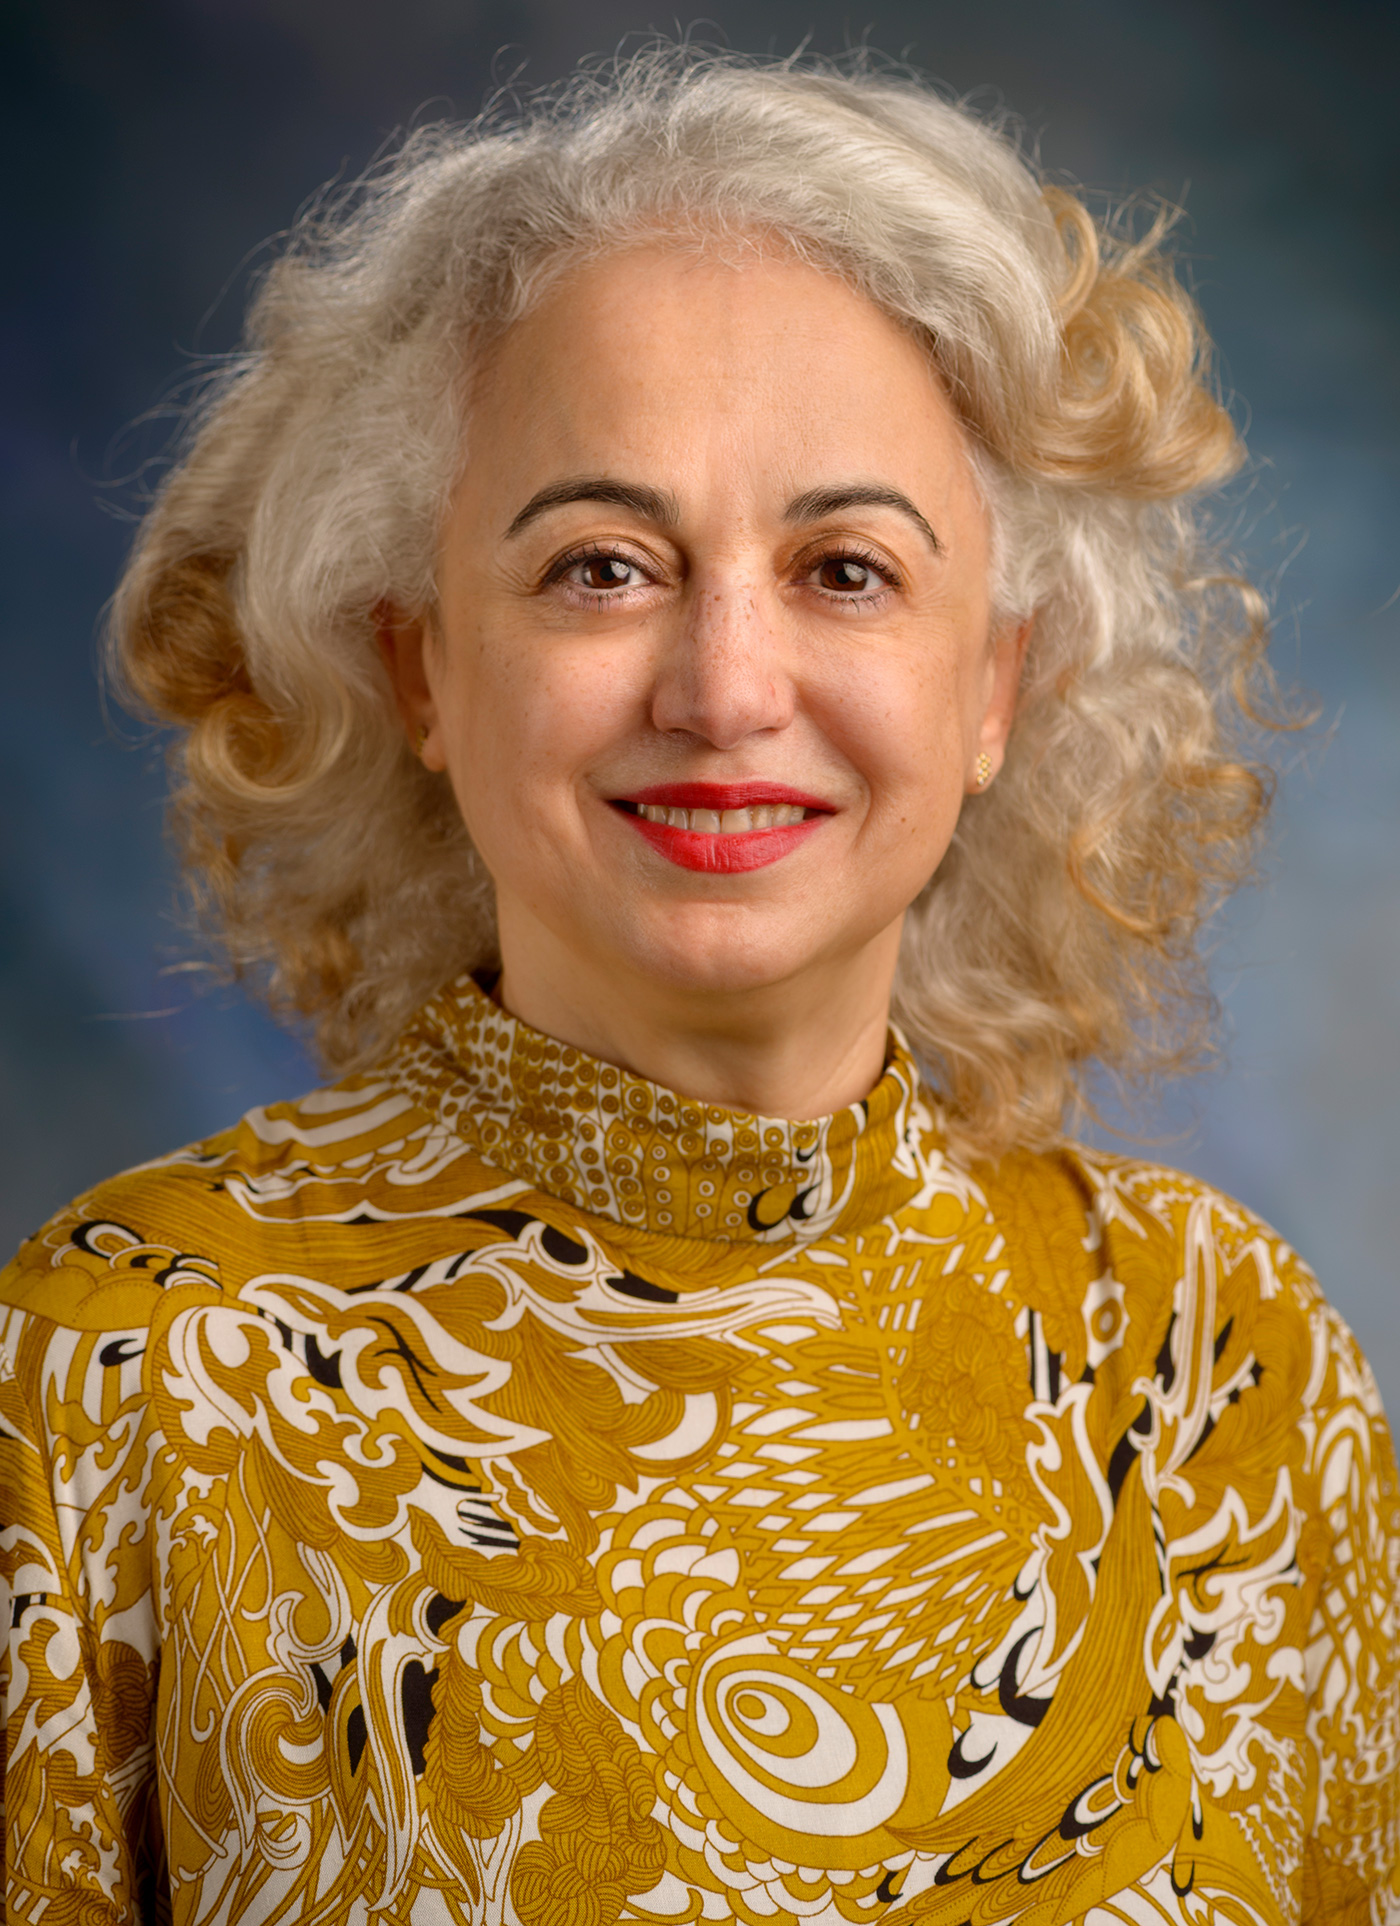 Iman Chahine, Ph.D. is the Co-Editor-Journal of Mathematics and Culture and an Associate Professor Mathematics Education in the College of Education at UMass Lowell.